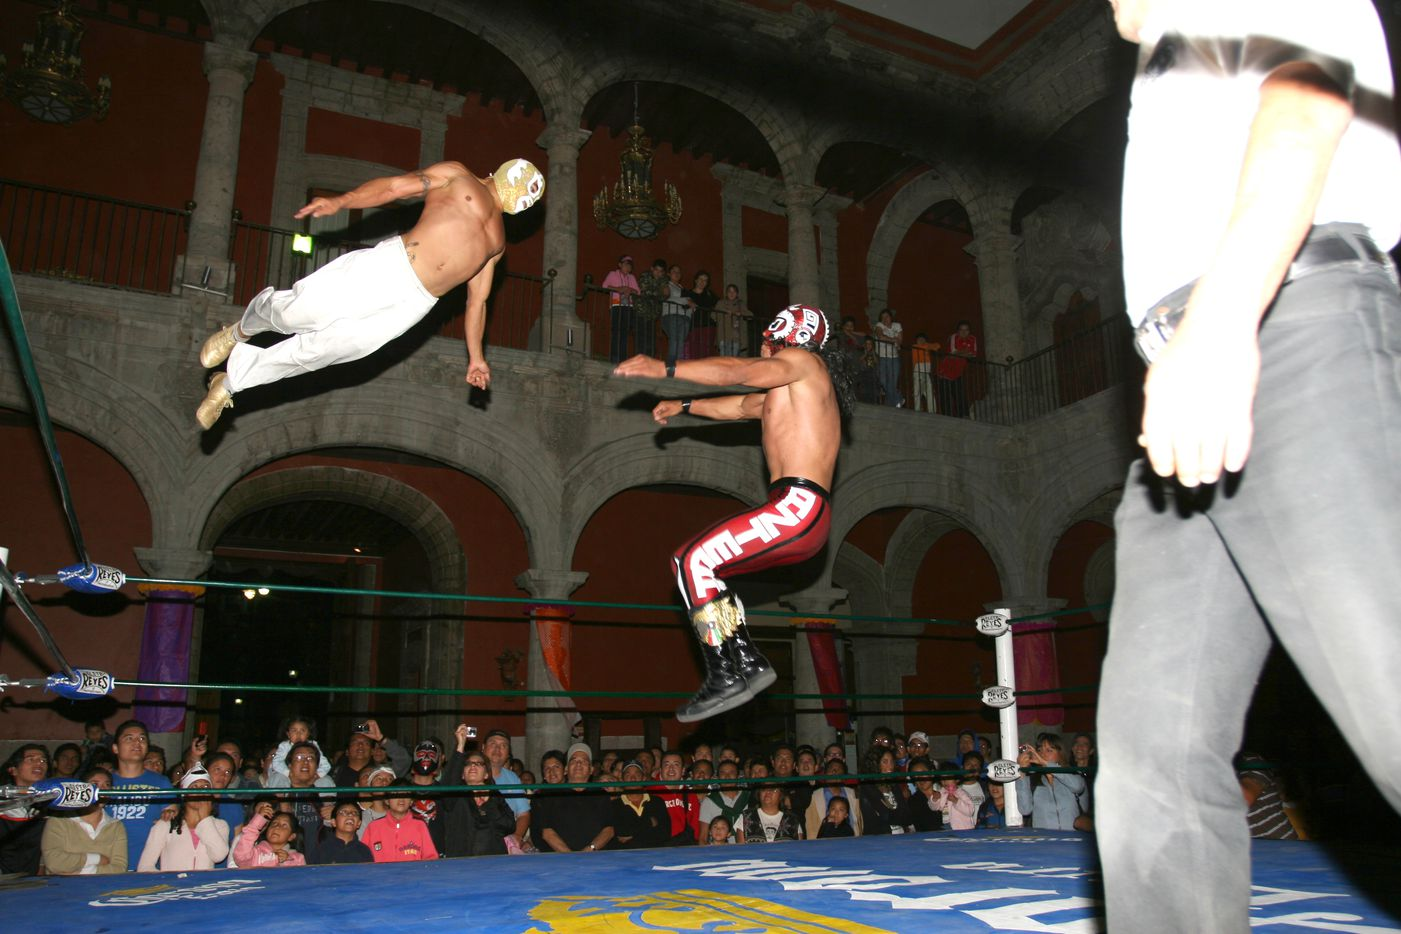 Shaun Leonardo, or El Conquistador de Nueva York (left), leaps from the top turnbuckle during a wrestling match. This photo appears in the new, glossy art magazine about wrestling culture, Orange Crush, a passion project edited by art adviser and fan Adam Abdalla.